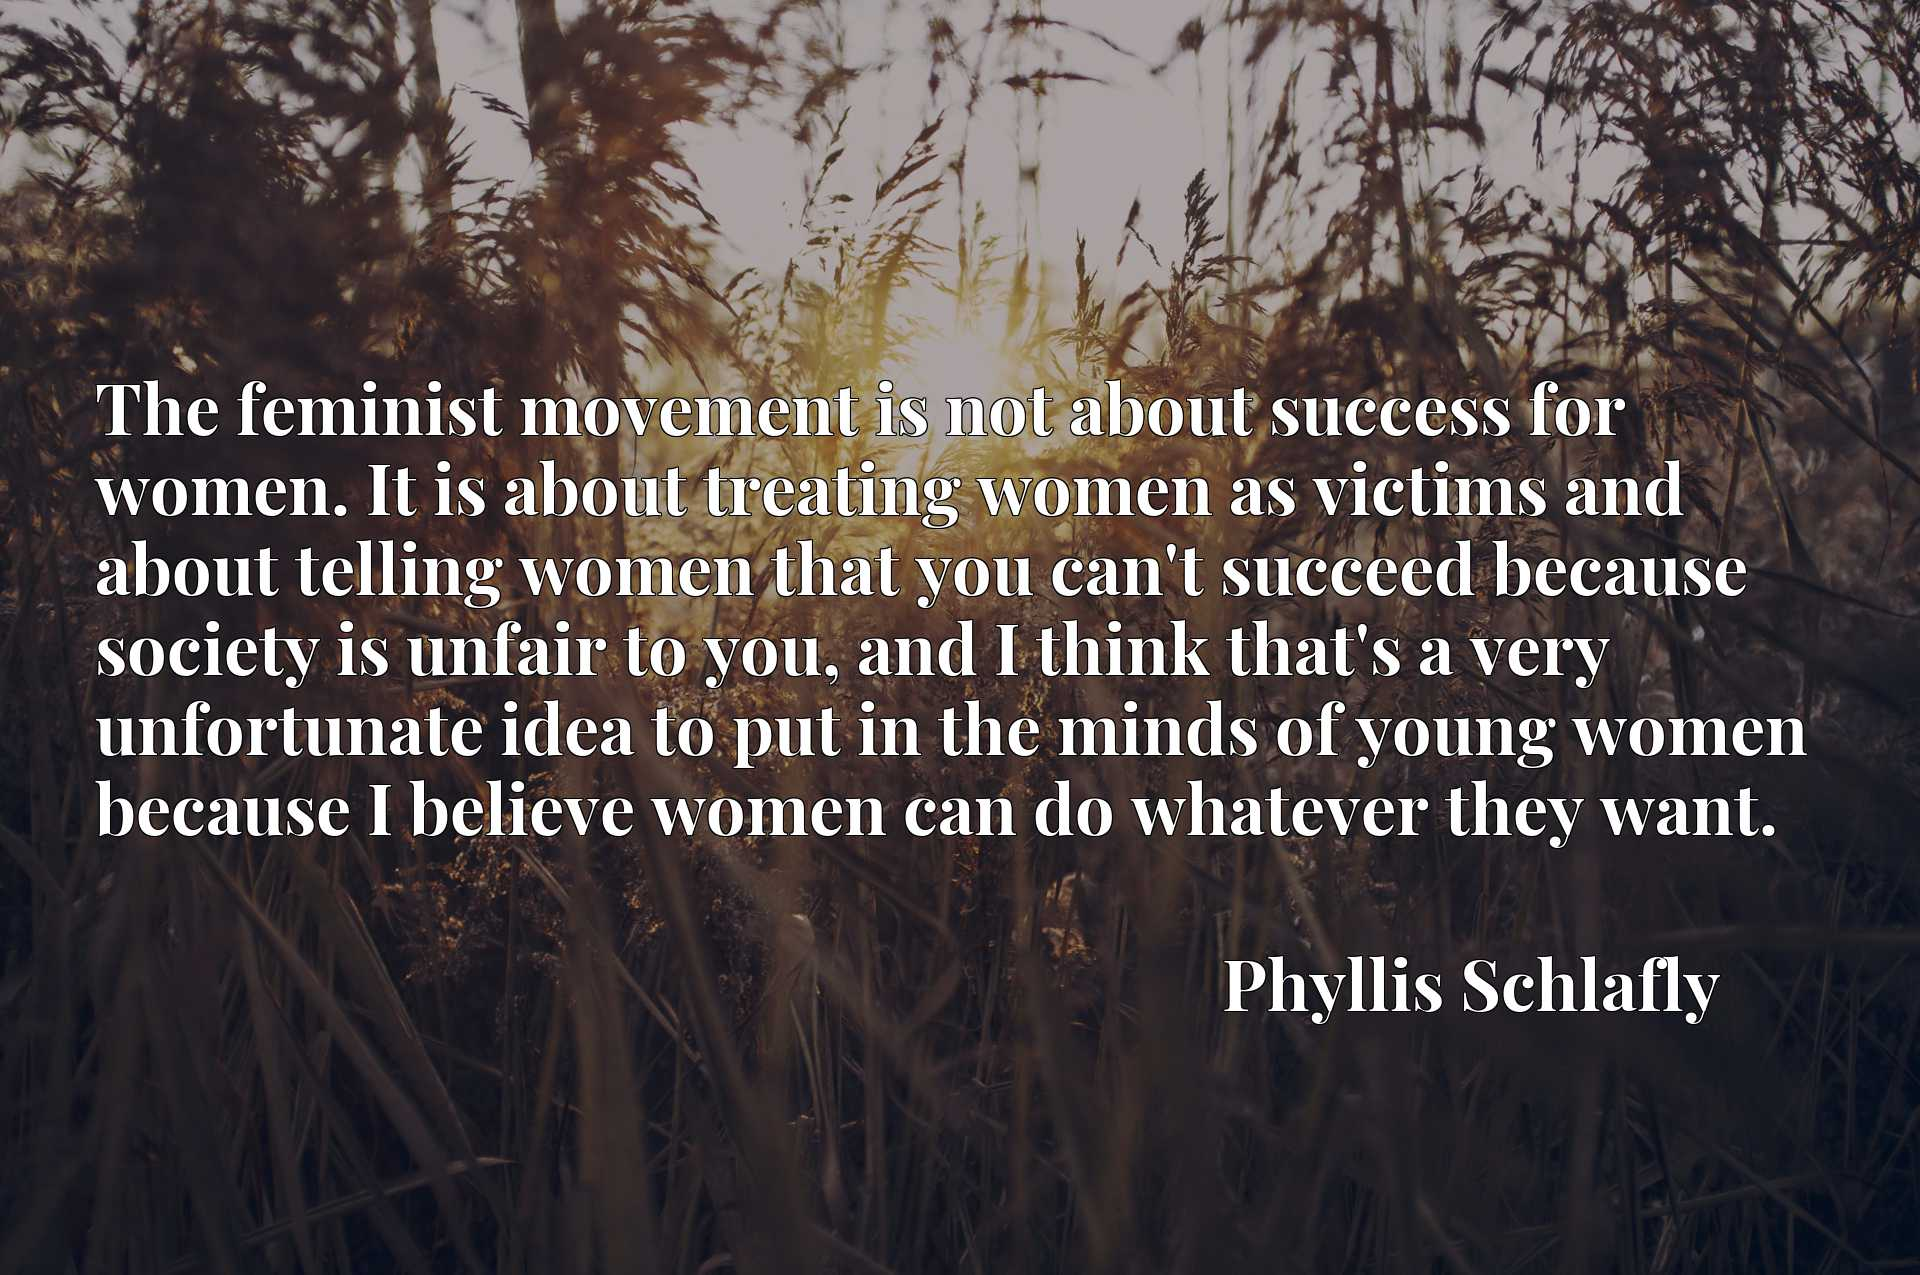 The feminist movement is not about success for women. It is about treating women as victims and about telling women that you can't succeed because society is unfair to you, and I think that's a very unfortunate idea to put in the minds of young women because I believe women can do whatever they want.